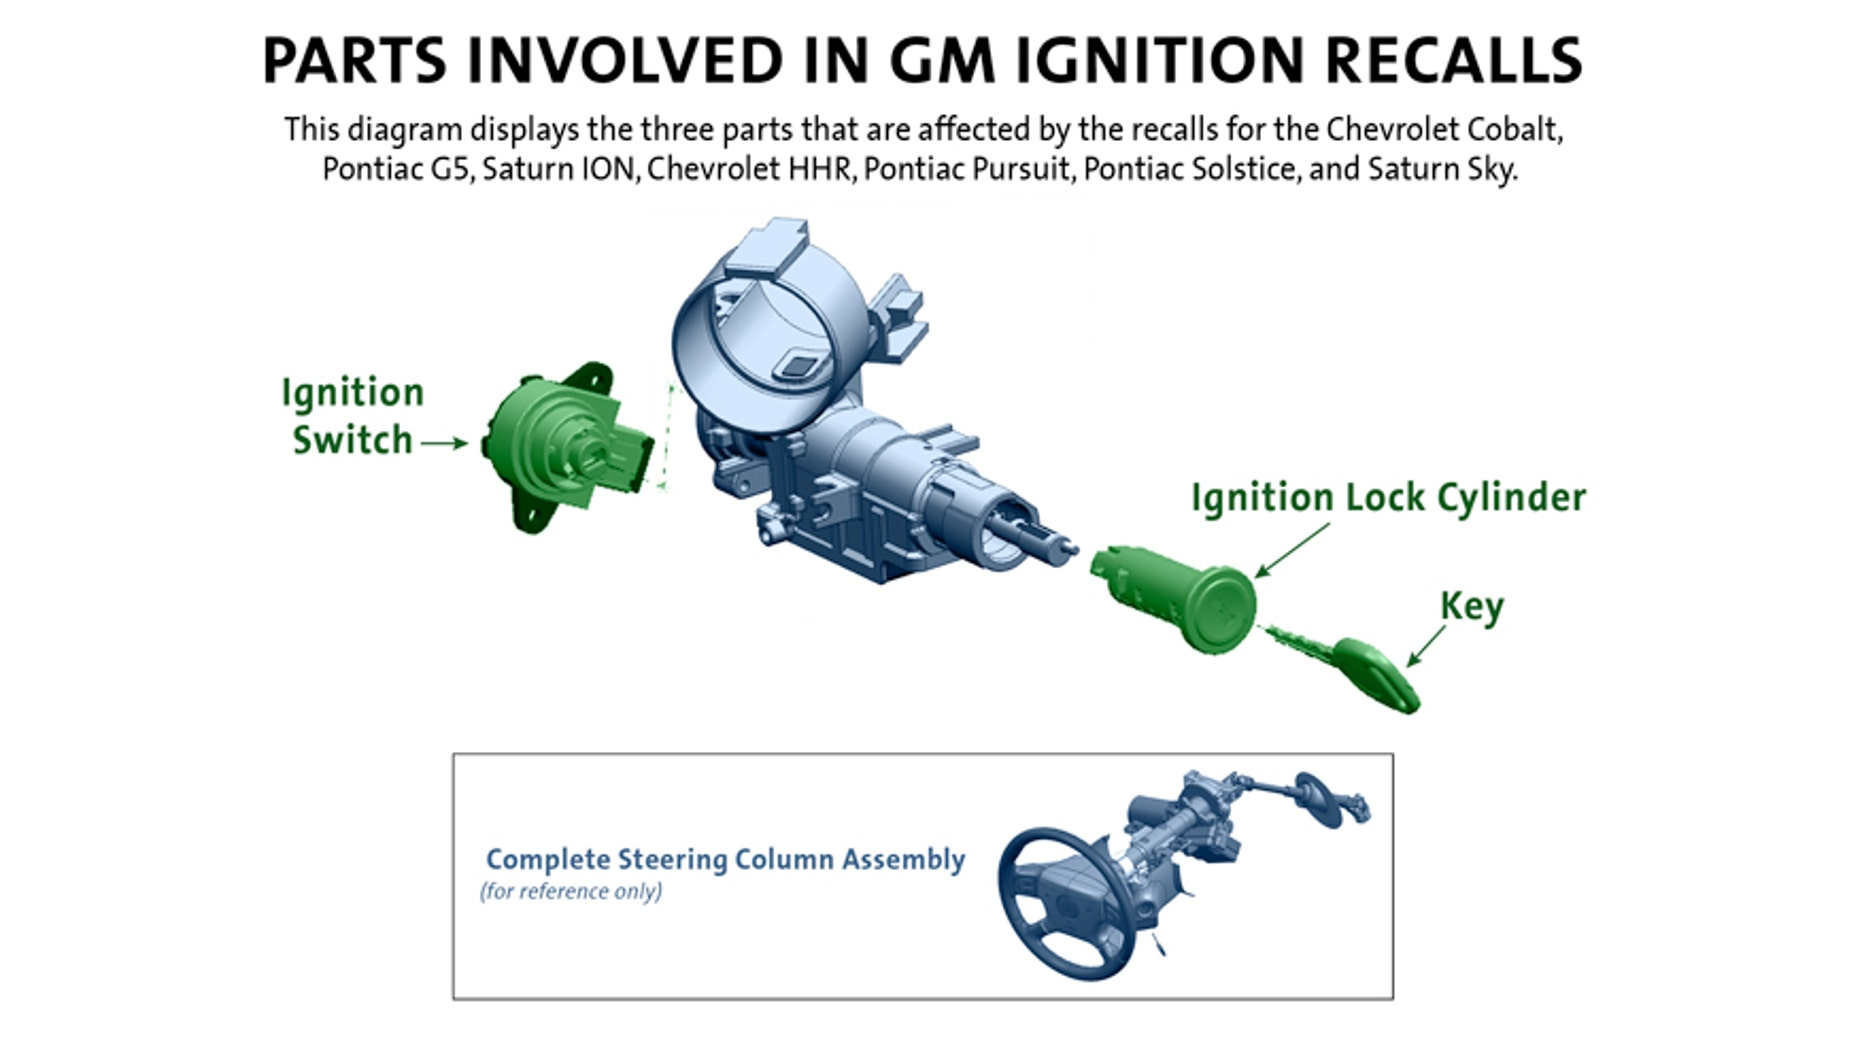 Ignition Lock Cylinder Replacement >> General Motors Adds Ignition Lock Cylinder Replacement To